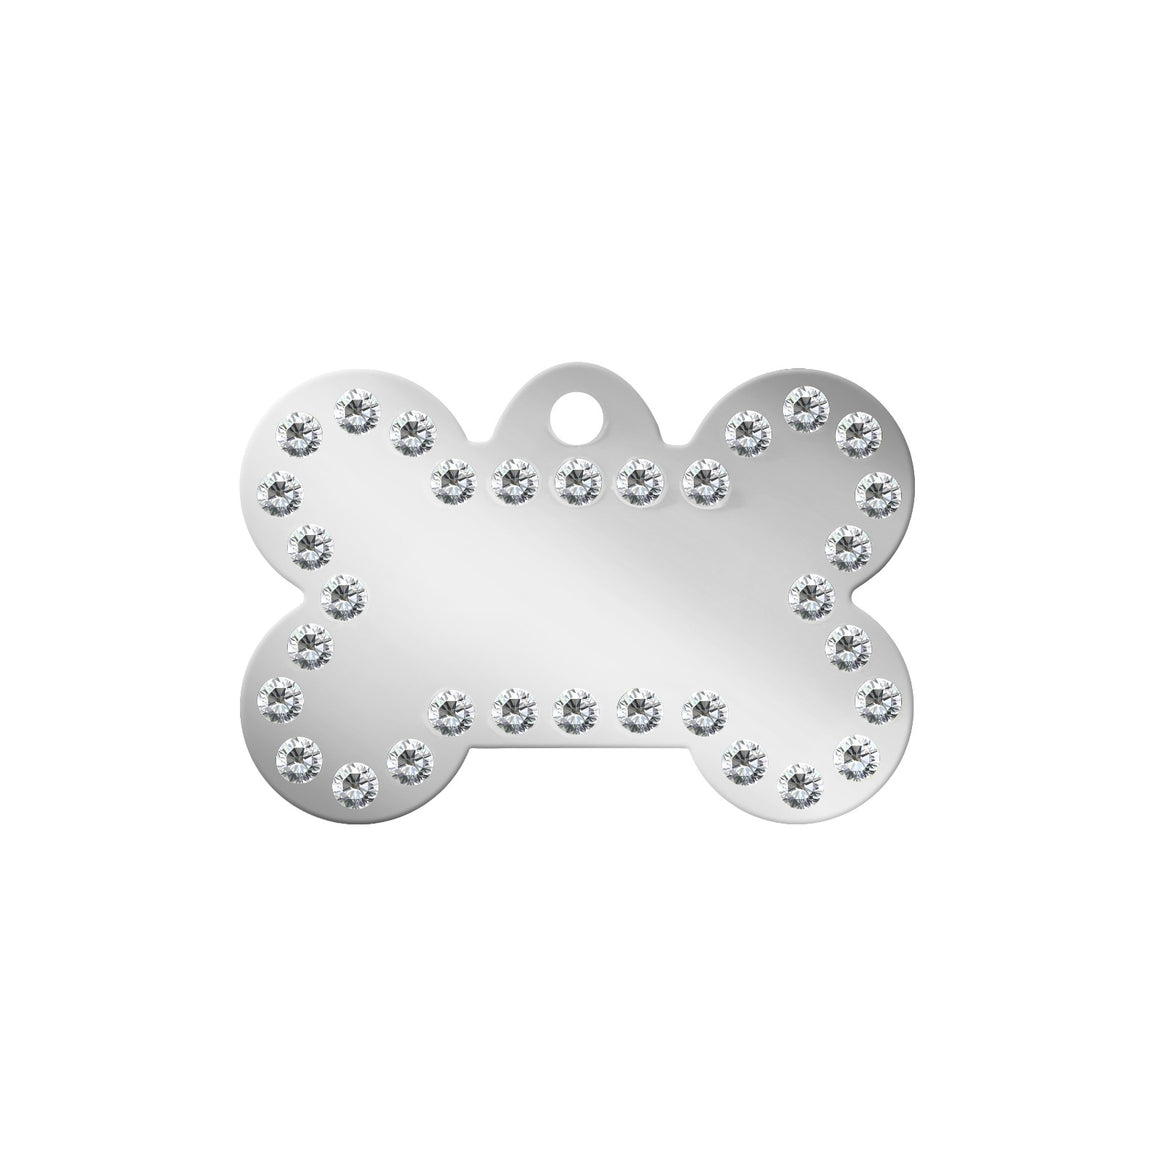 TaggIT Glamour Silver Large Bone Pet ID Tag